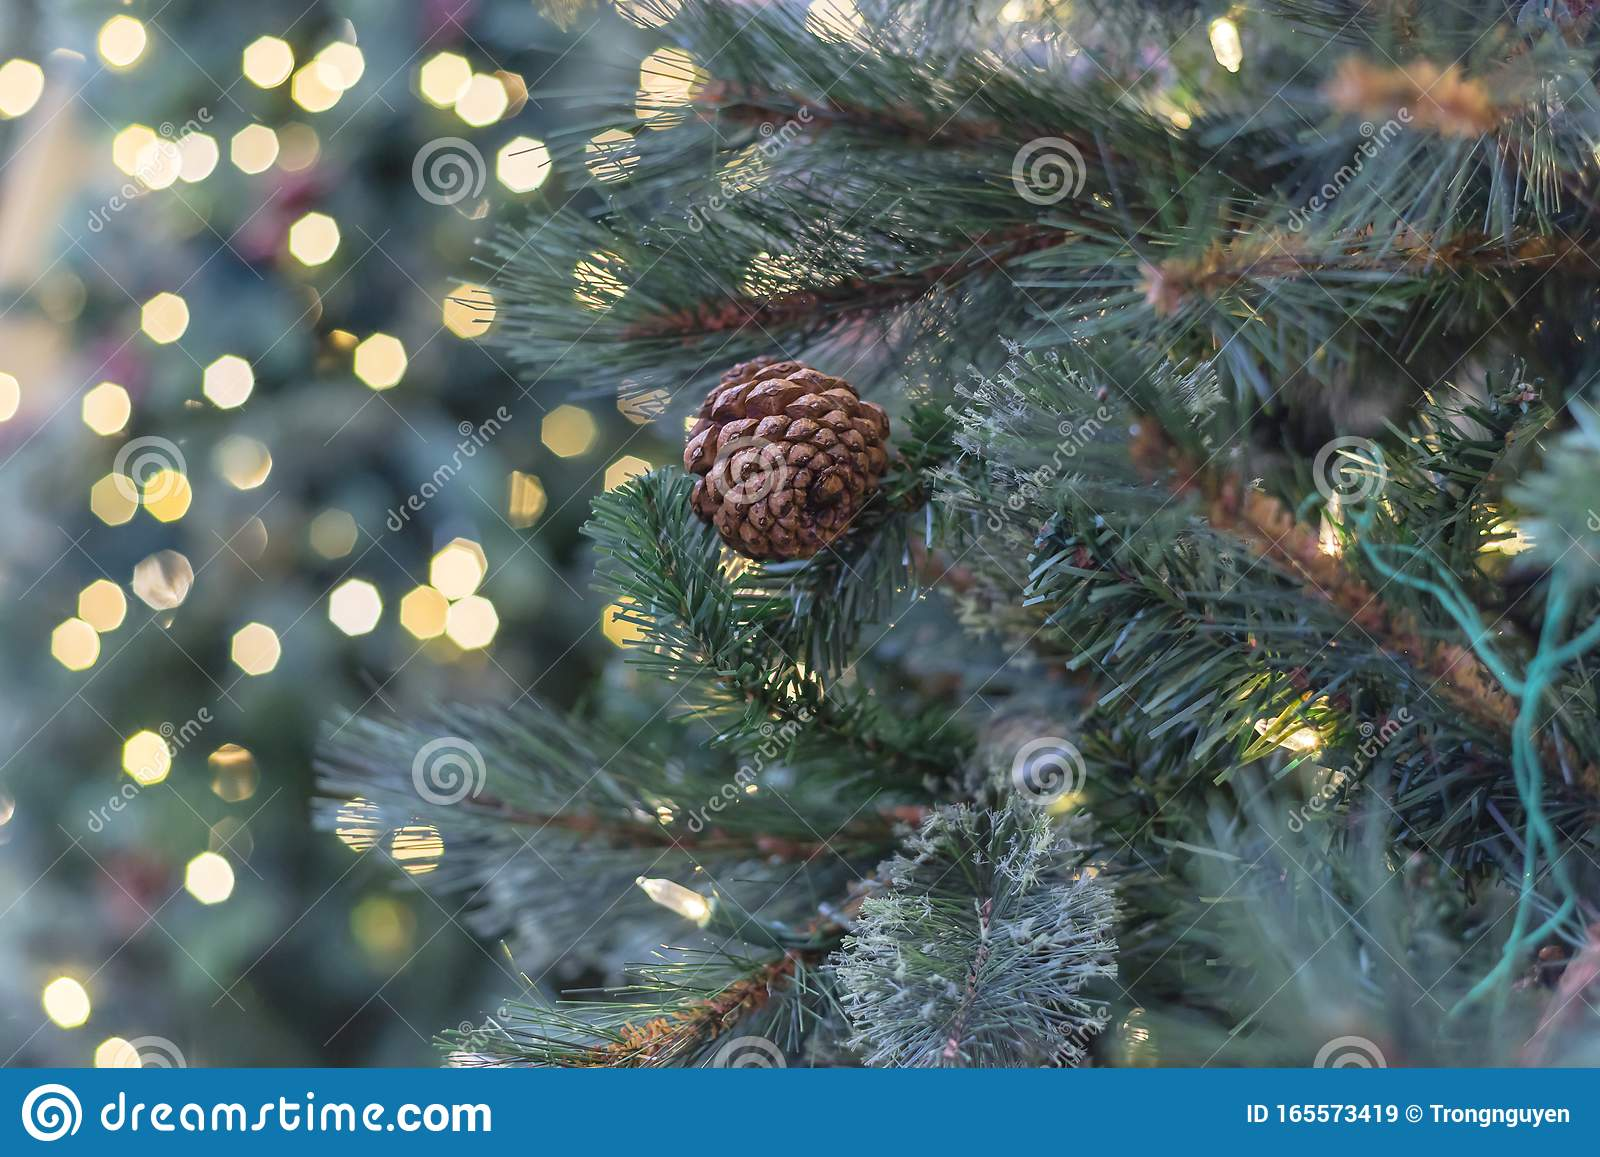 Artificial Christmas Tree With Pine Cones And Microdot Pre